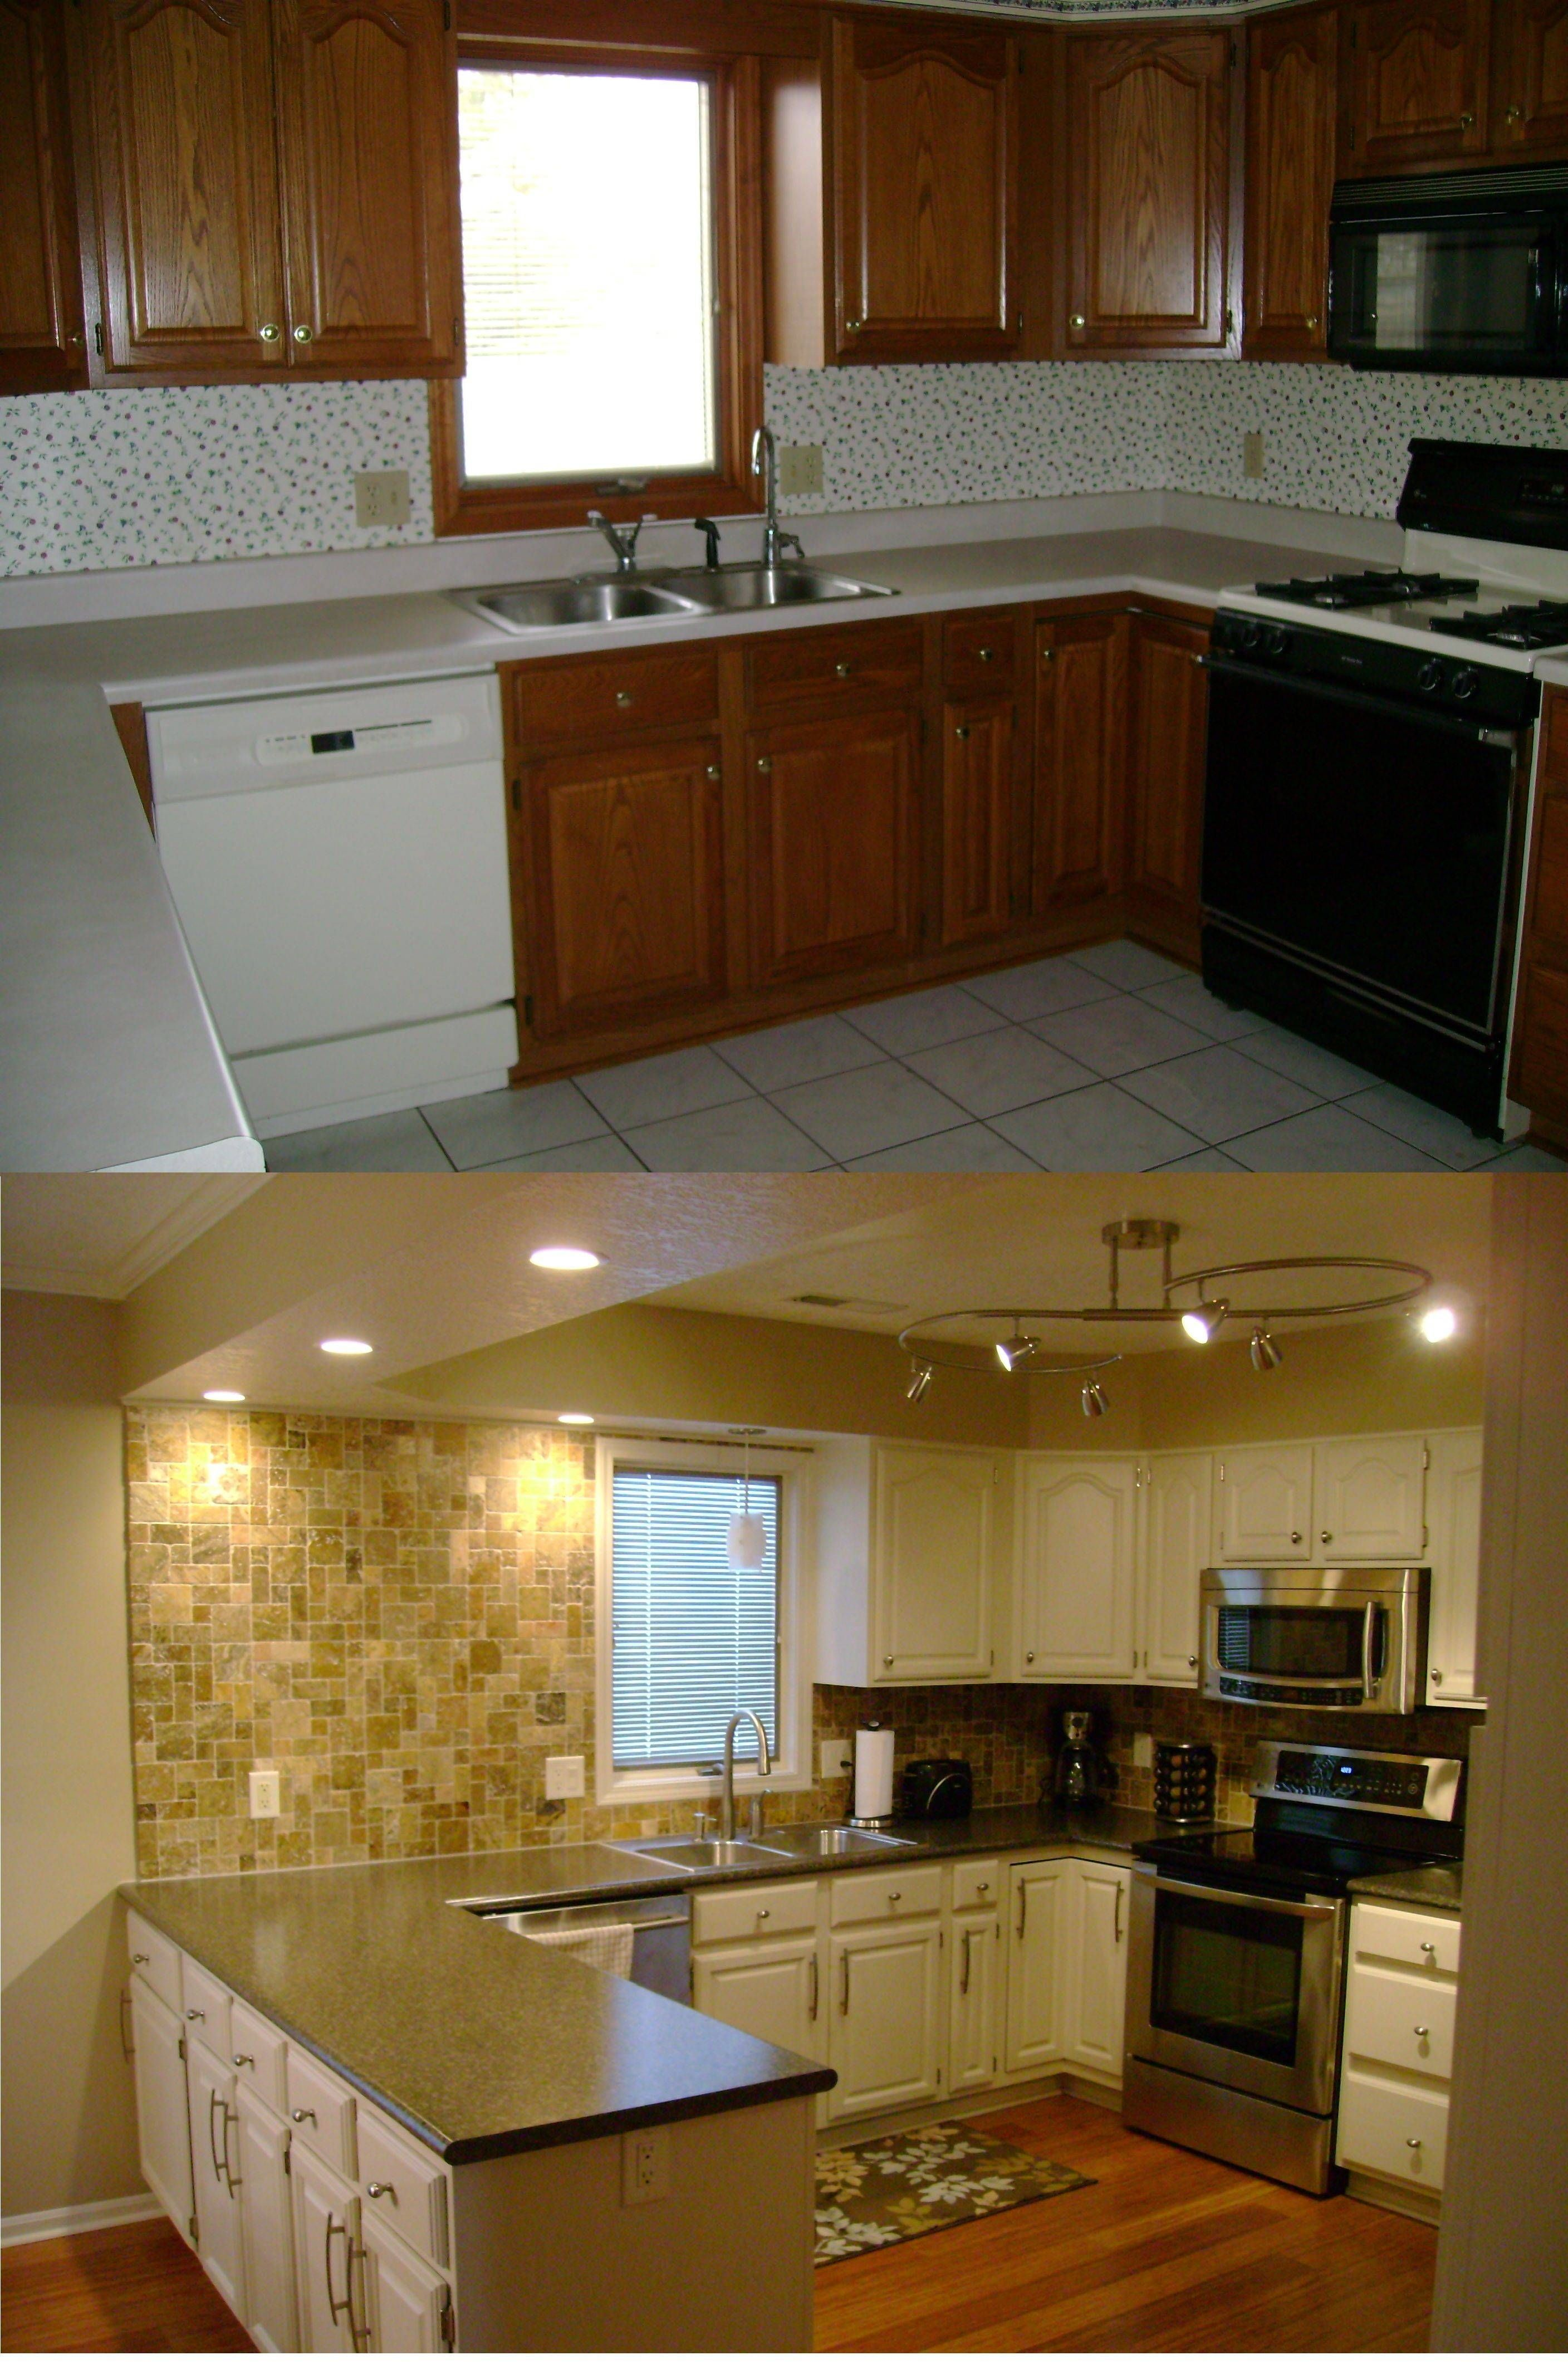 Townhouse Kitchen Remodel Buildingdesign Homedesign Architecture Home Design Housedesi Budget Kitchen Remodel Kitchen Remodel Cost Kitchen Remodel Small